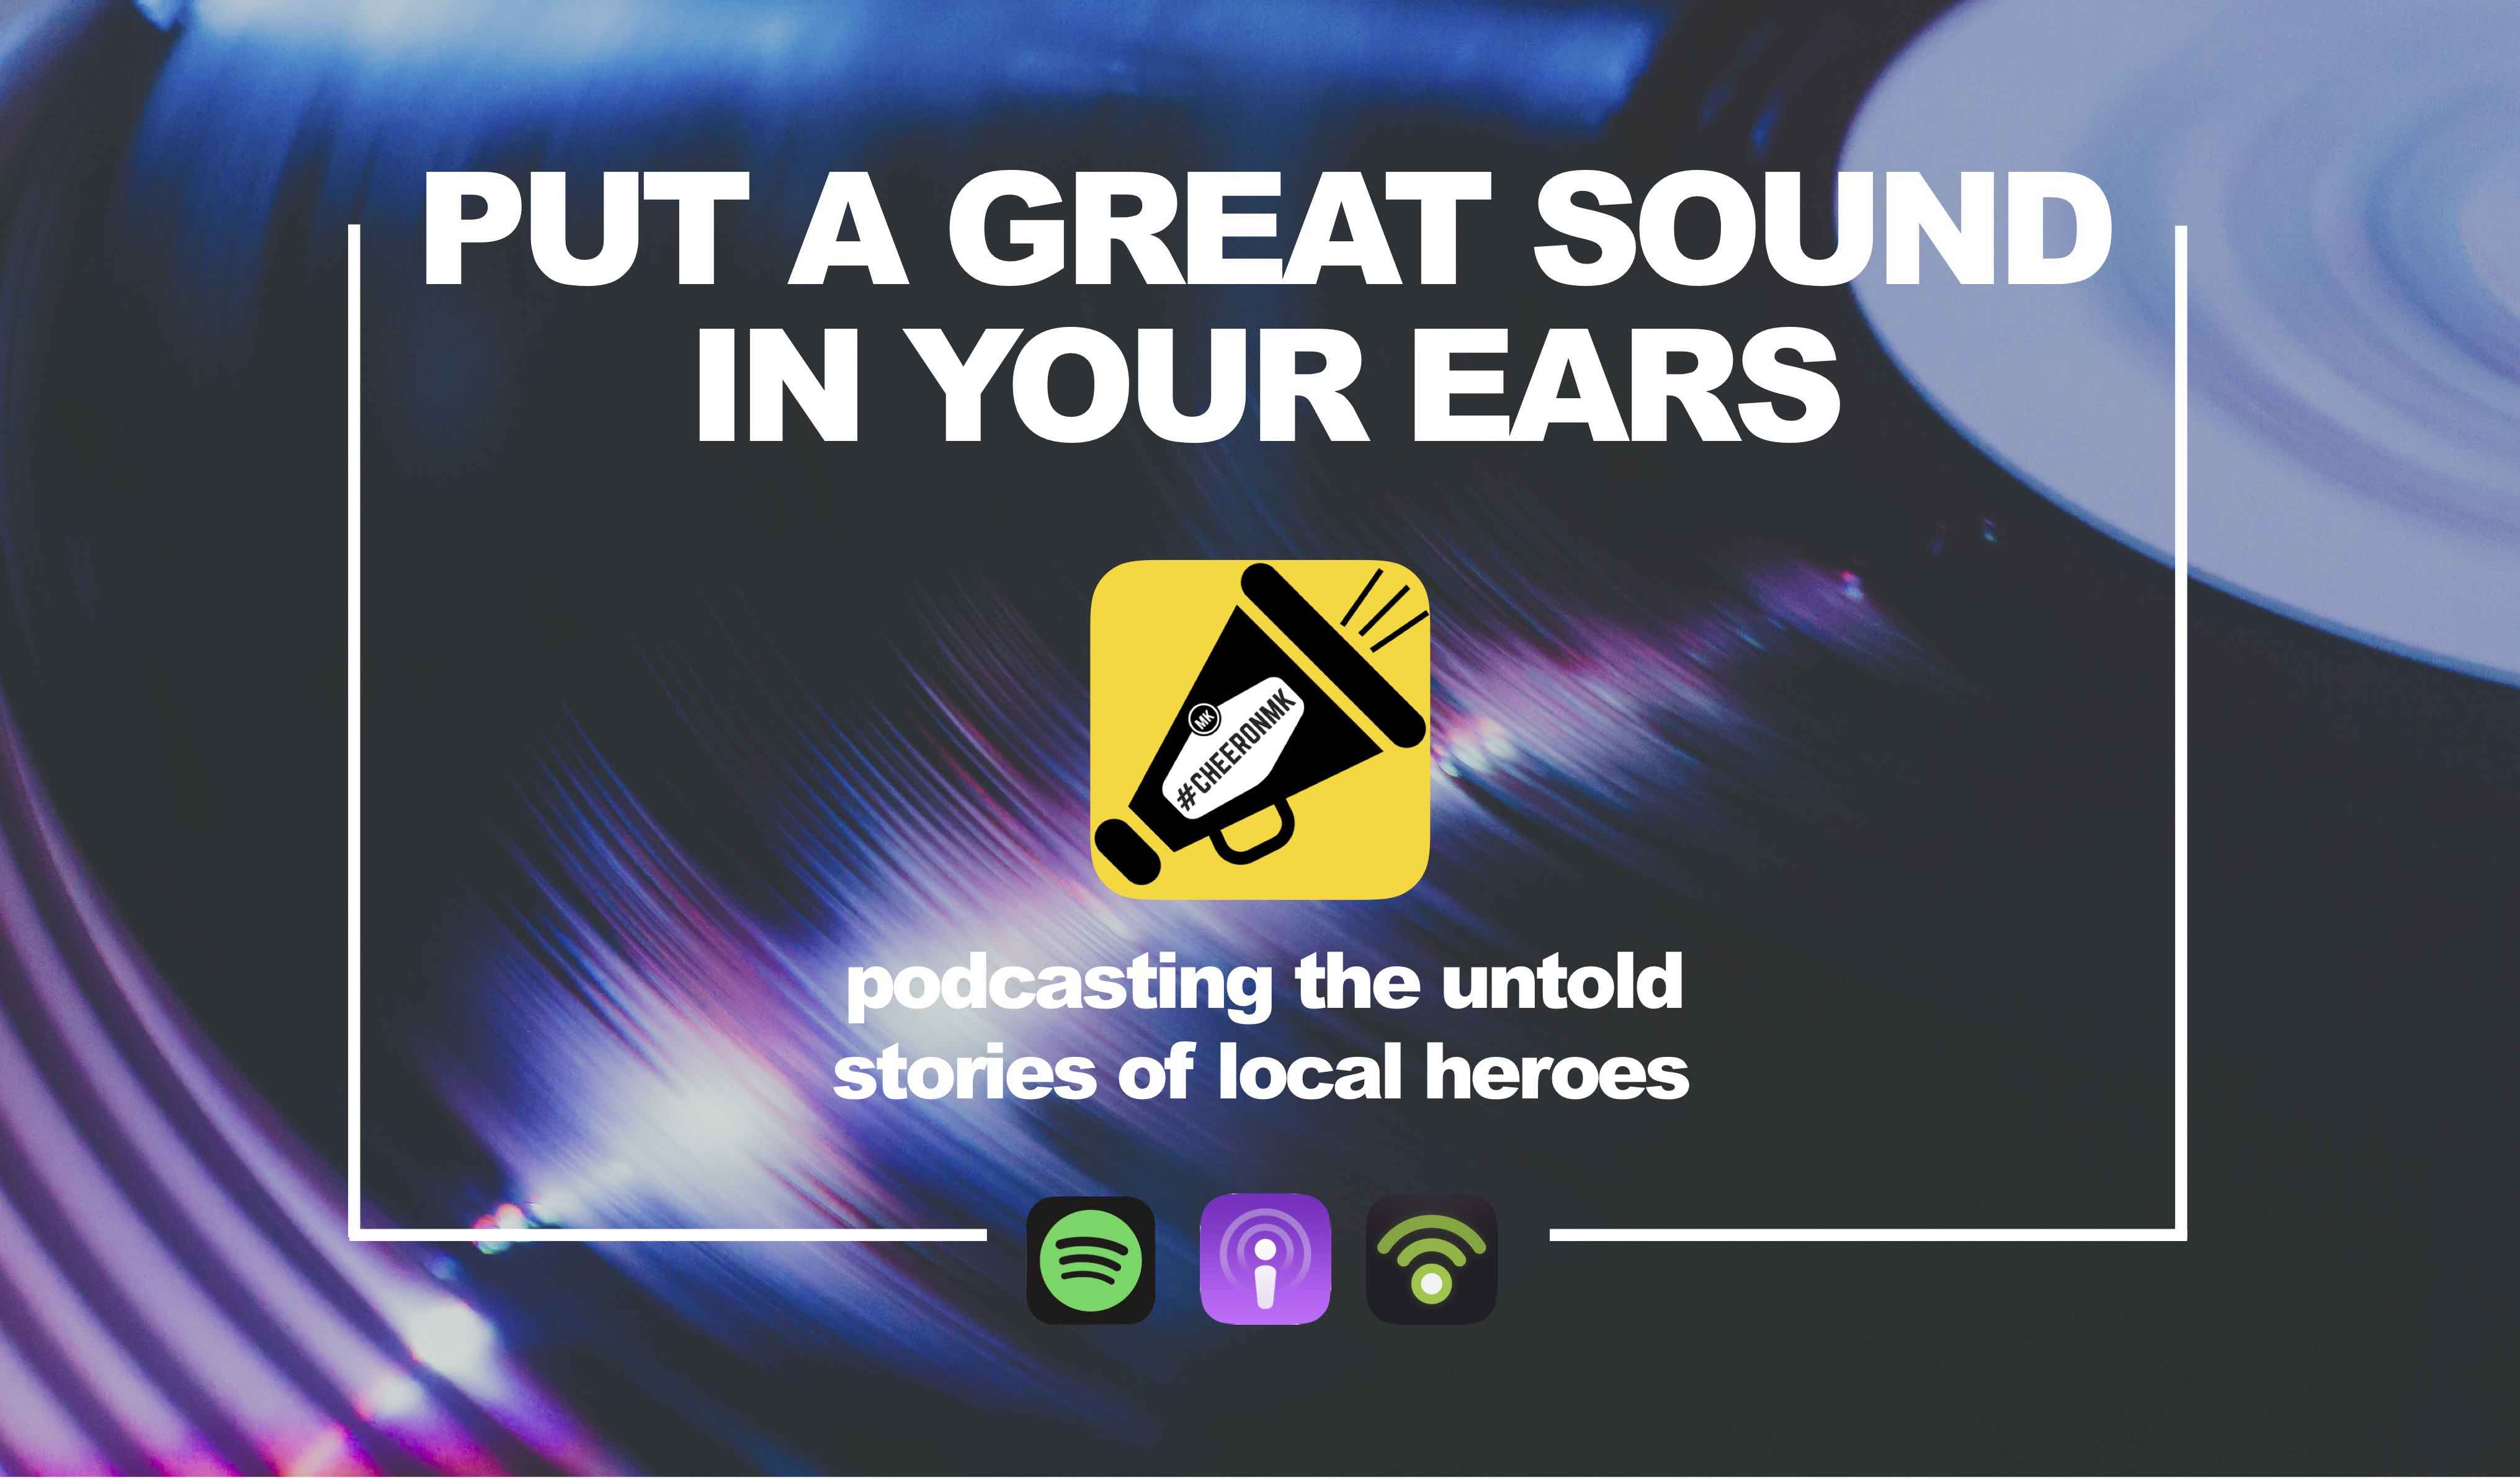 Podcast Ad 1 Small